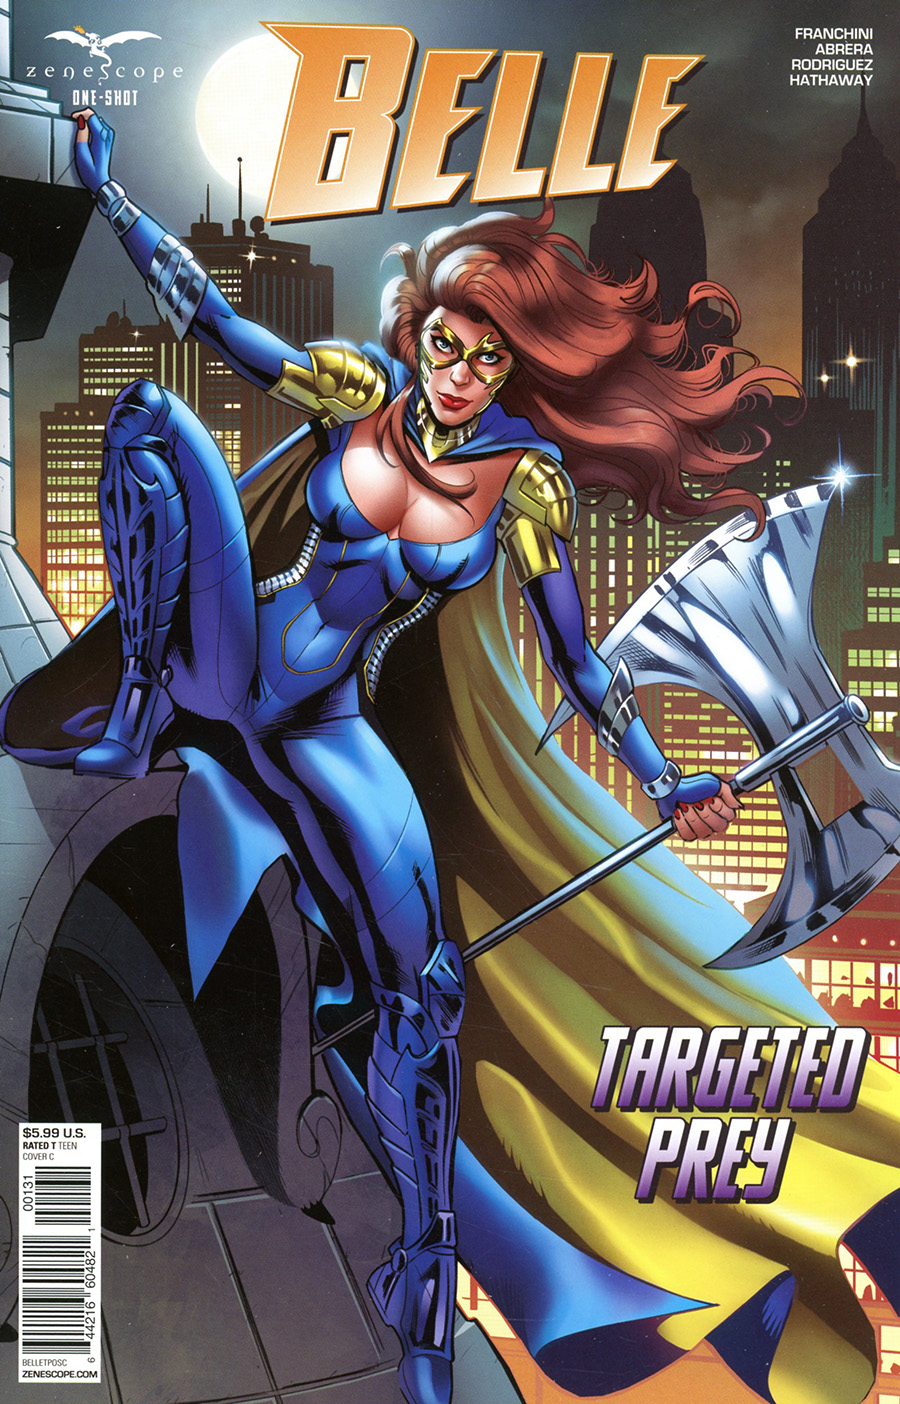 Grimm Fairy Tales Presents Belle Targeted Prey One Shot Cover C Maria Laura Sanapo